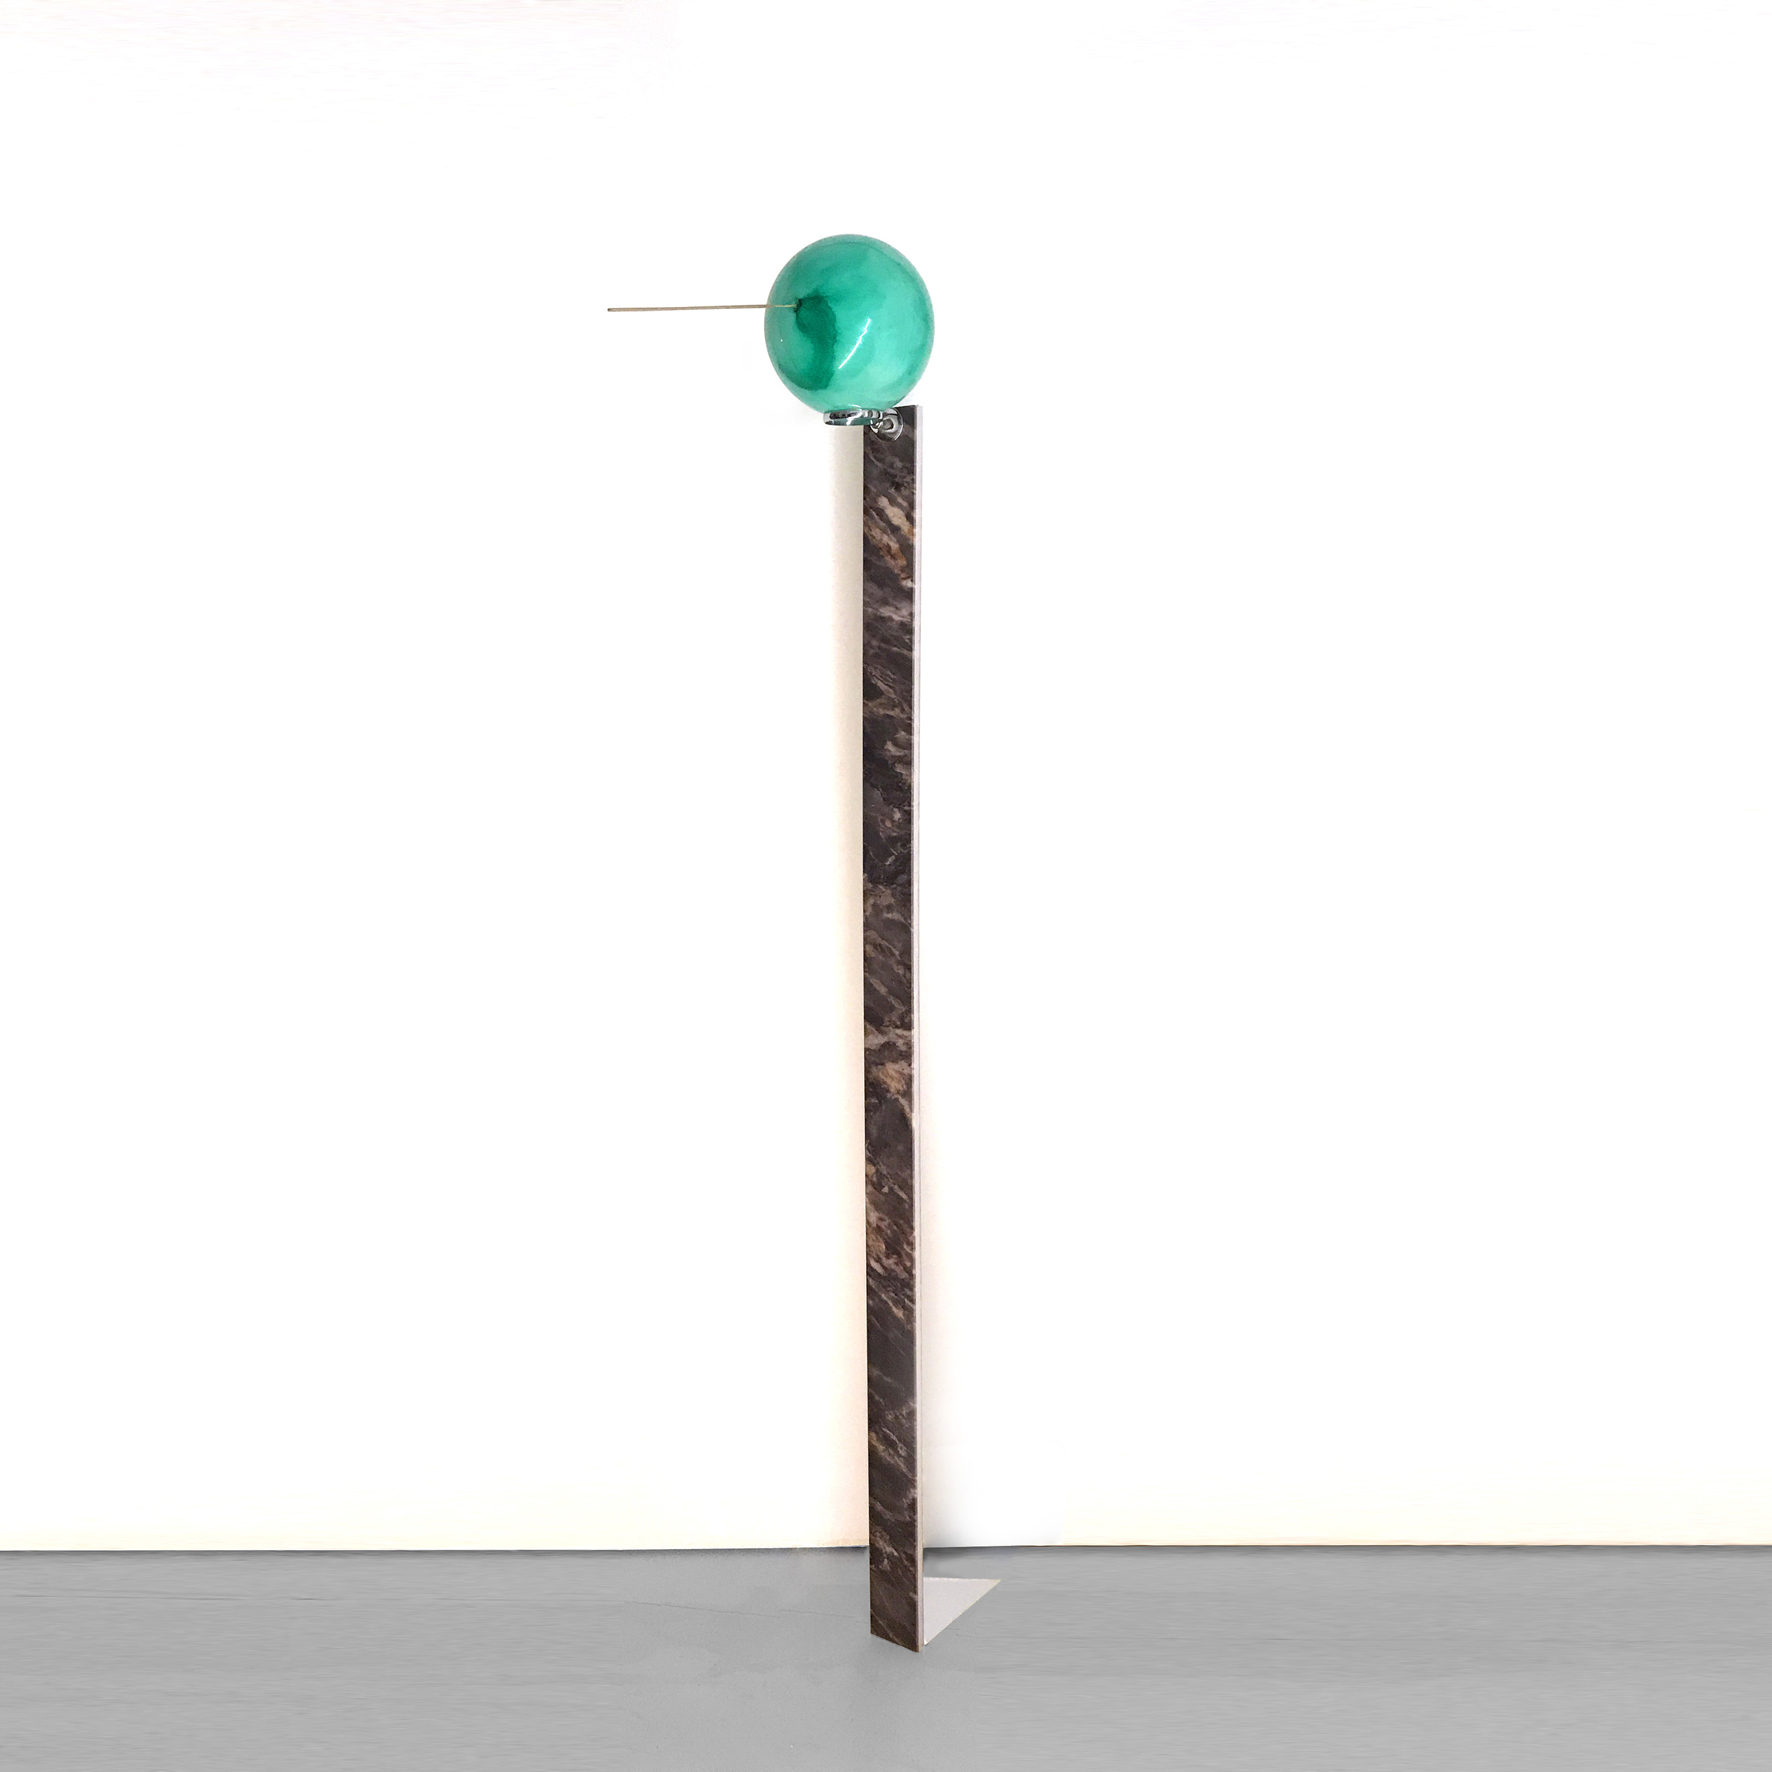 Nicola Gobbetto - I'LL NEVER LIE TO YOU (PINOCCHIO), 2019, digital printing on wood, enamel, aluminum, ball, incense, 32 x 16 x 167 cm